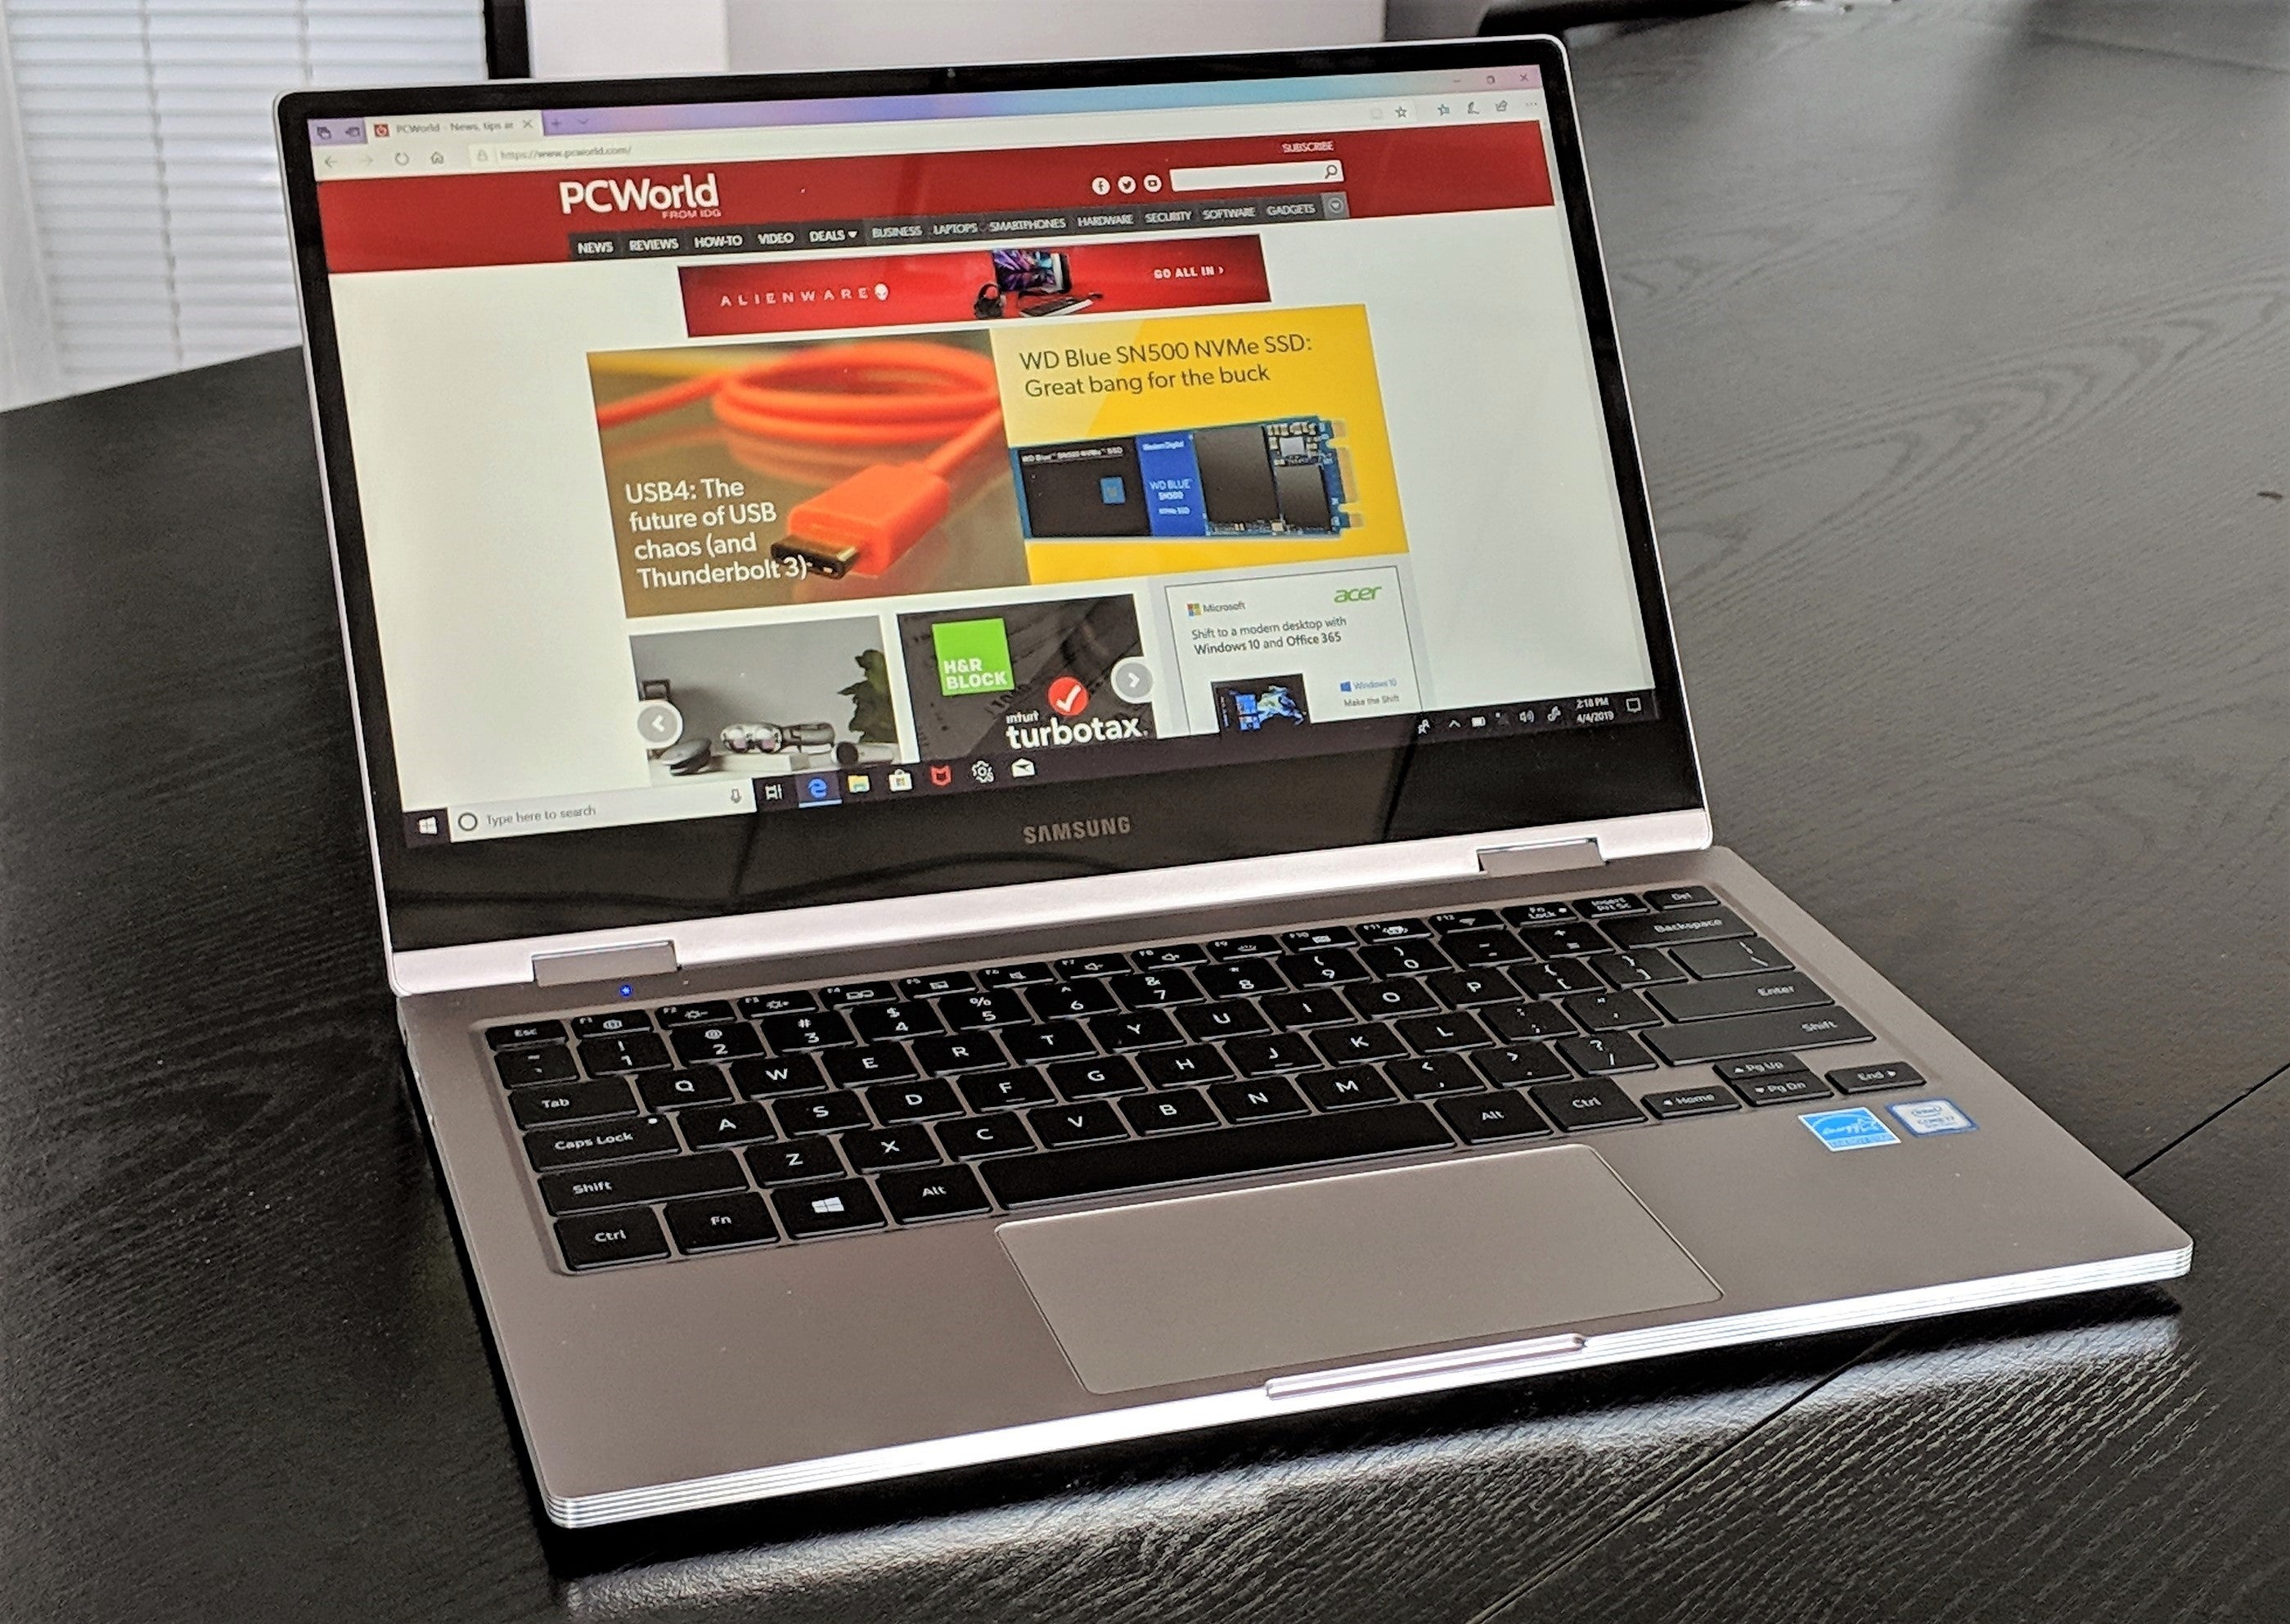 Samsung Notebook 9 Pro (2019) review: Good value and sleek